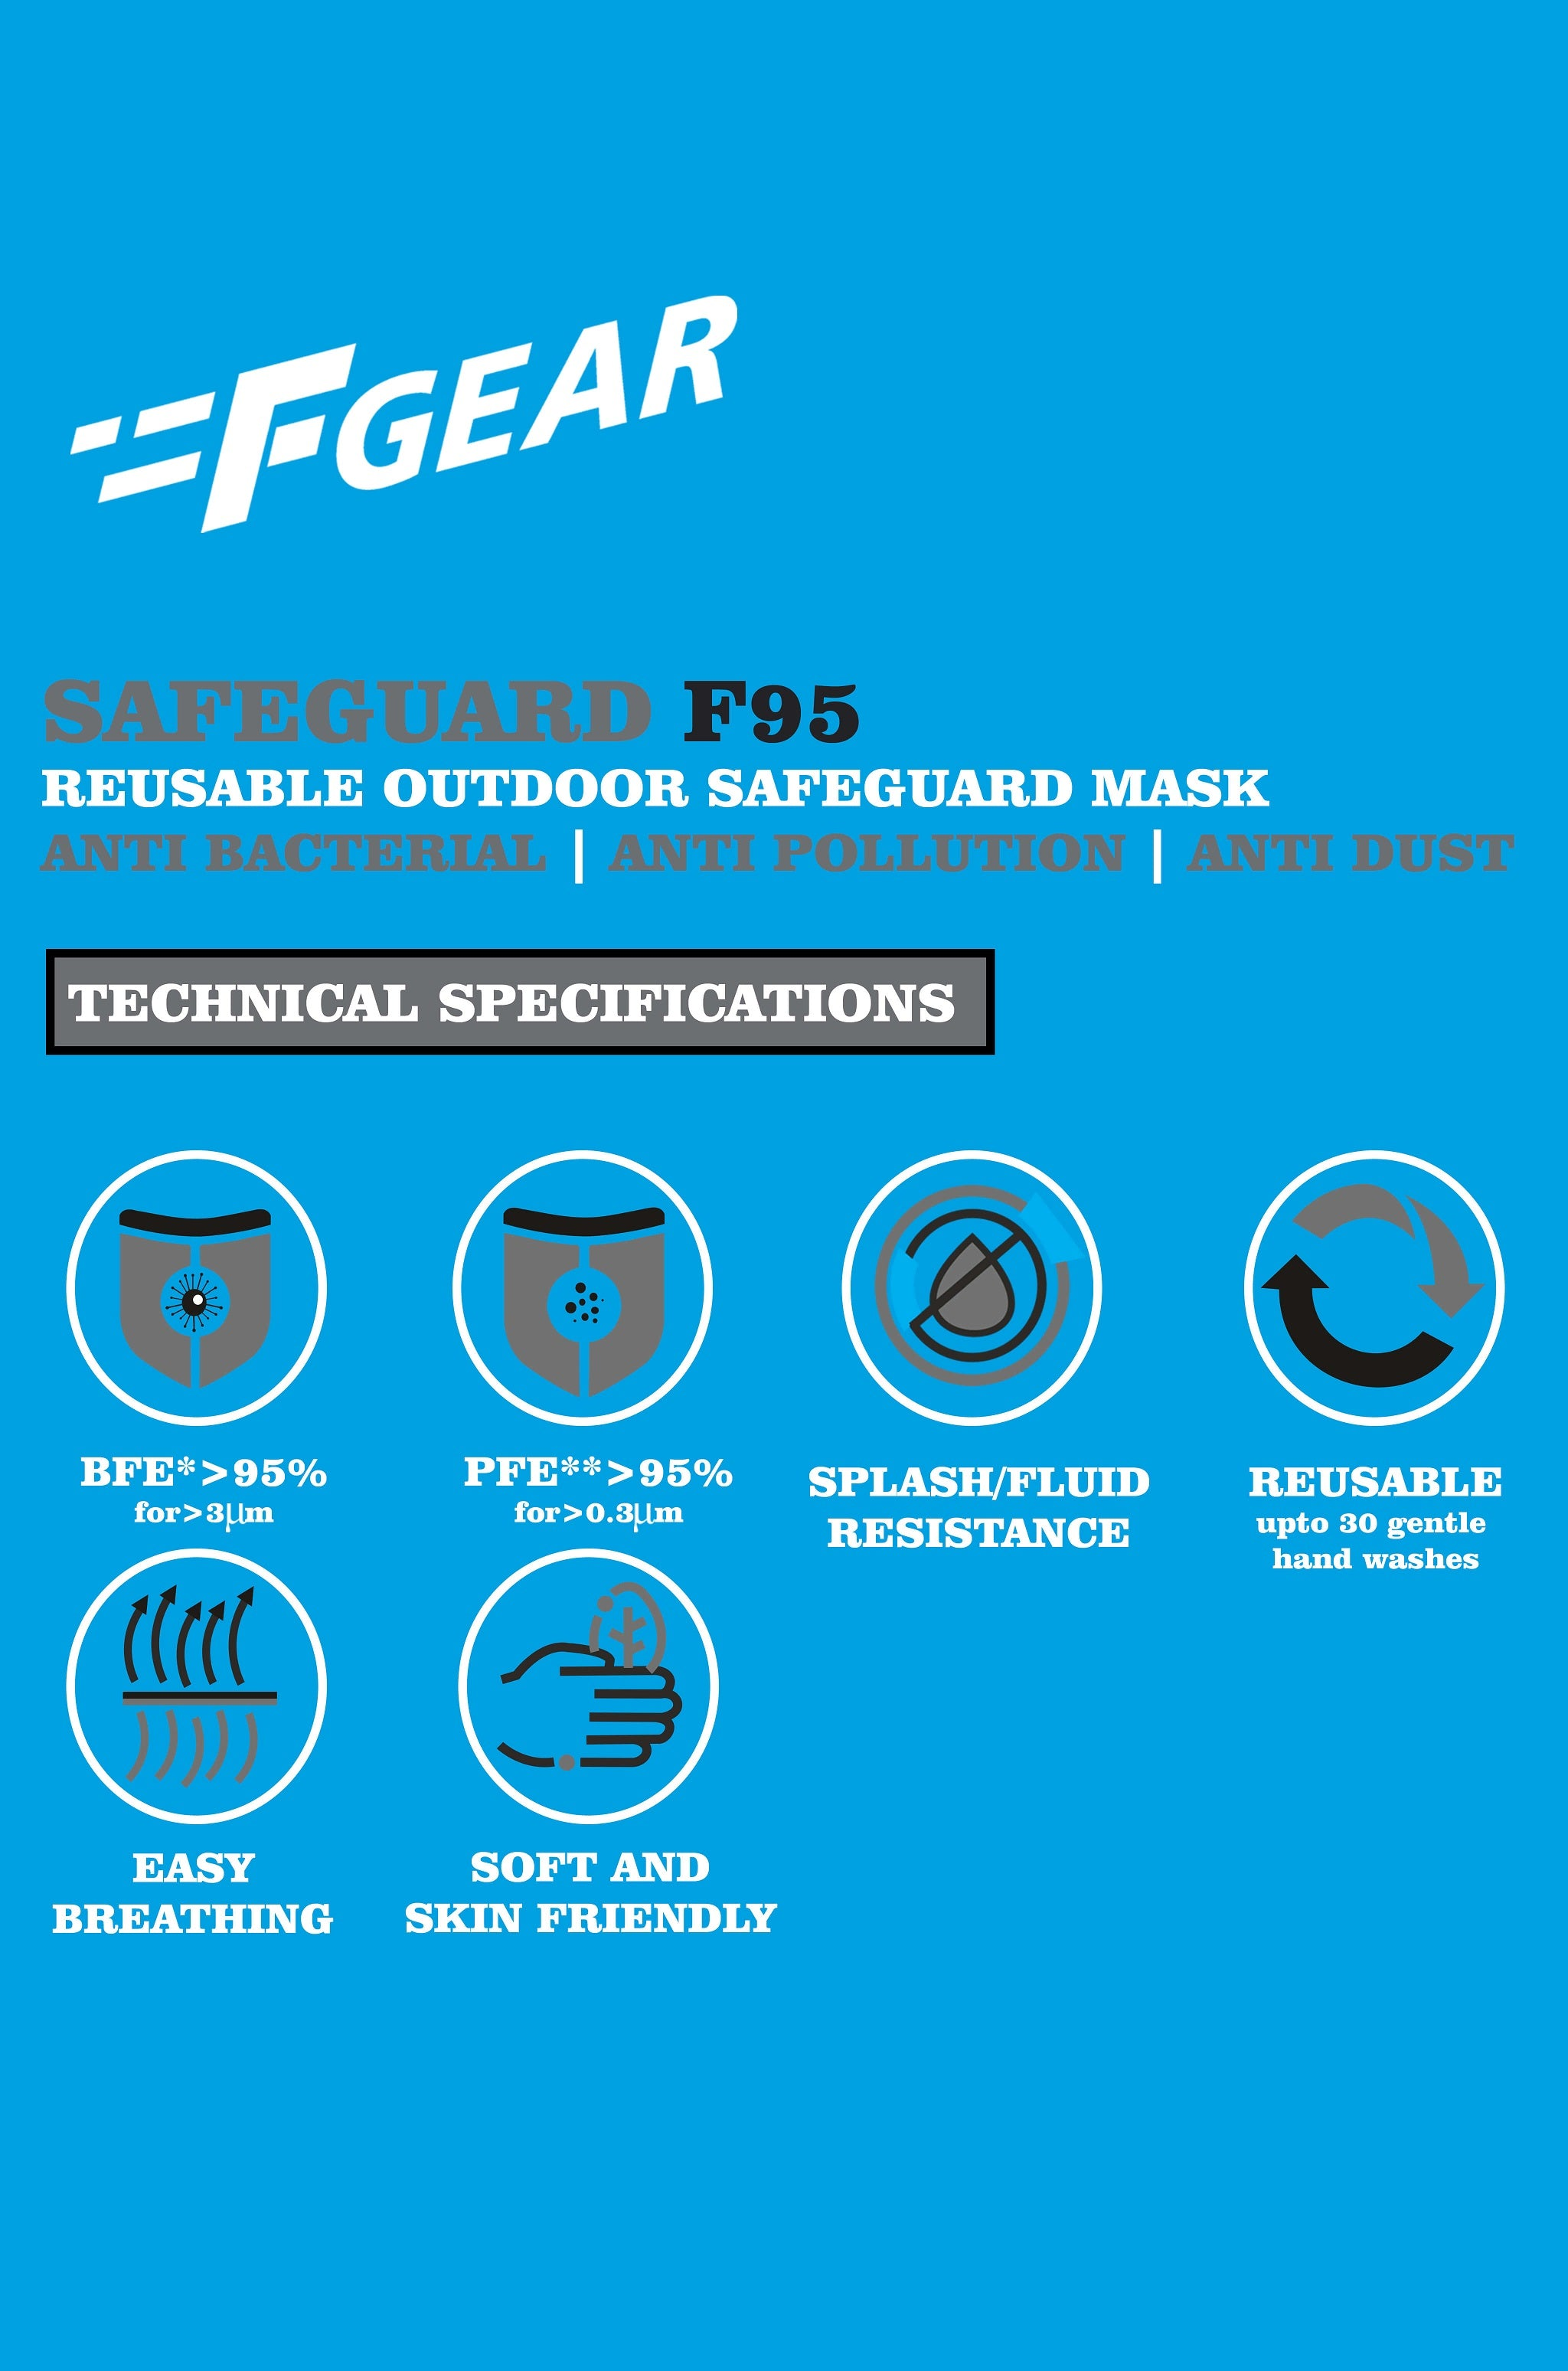 F Gear Safeguard F95 Outdoor Mask (Pack of 7)